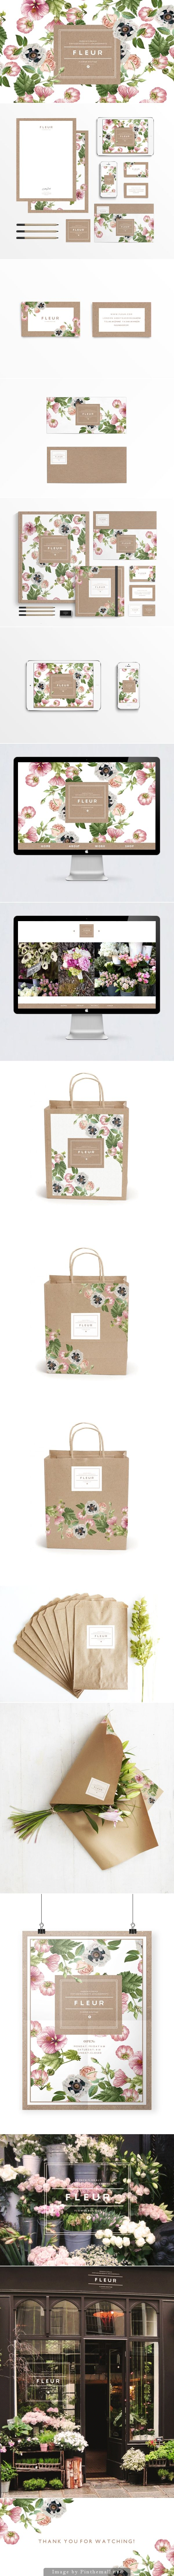 How beautiful is Fleur identity packaging branding curated by Packaging Diva PD